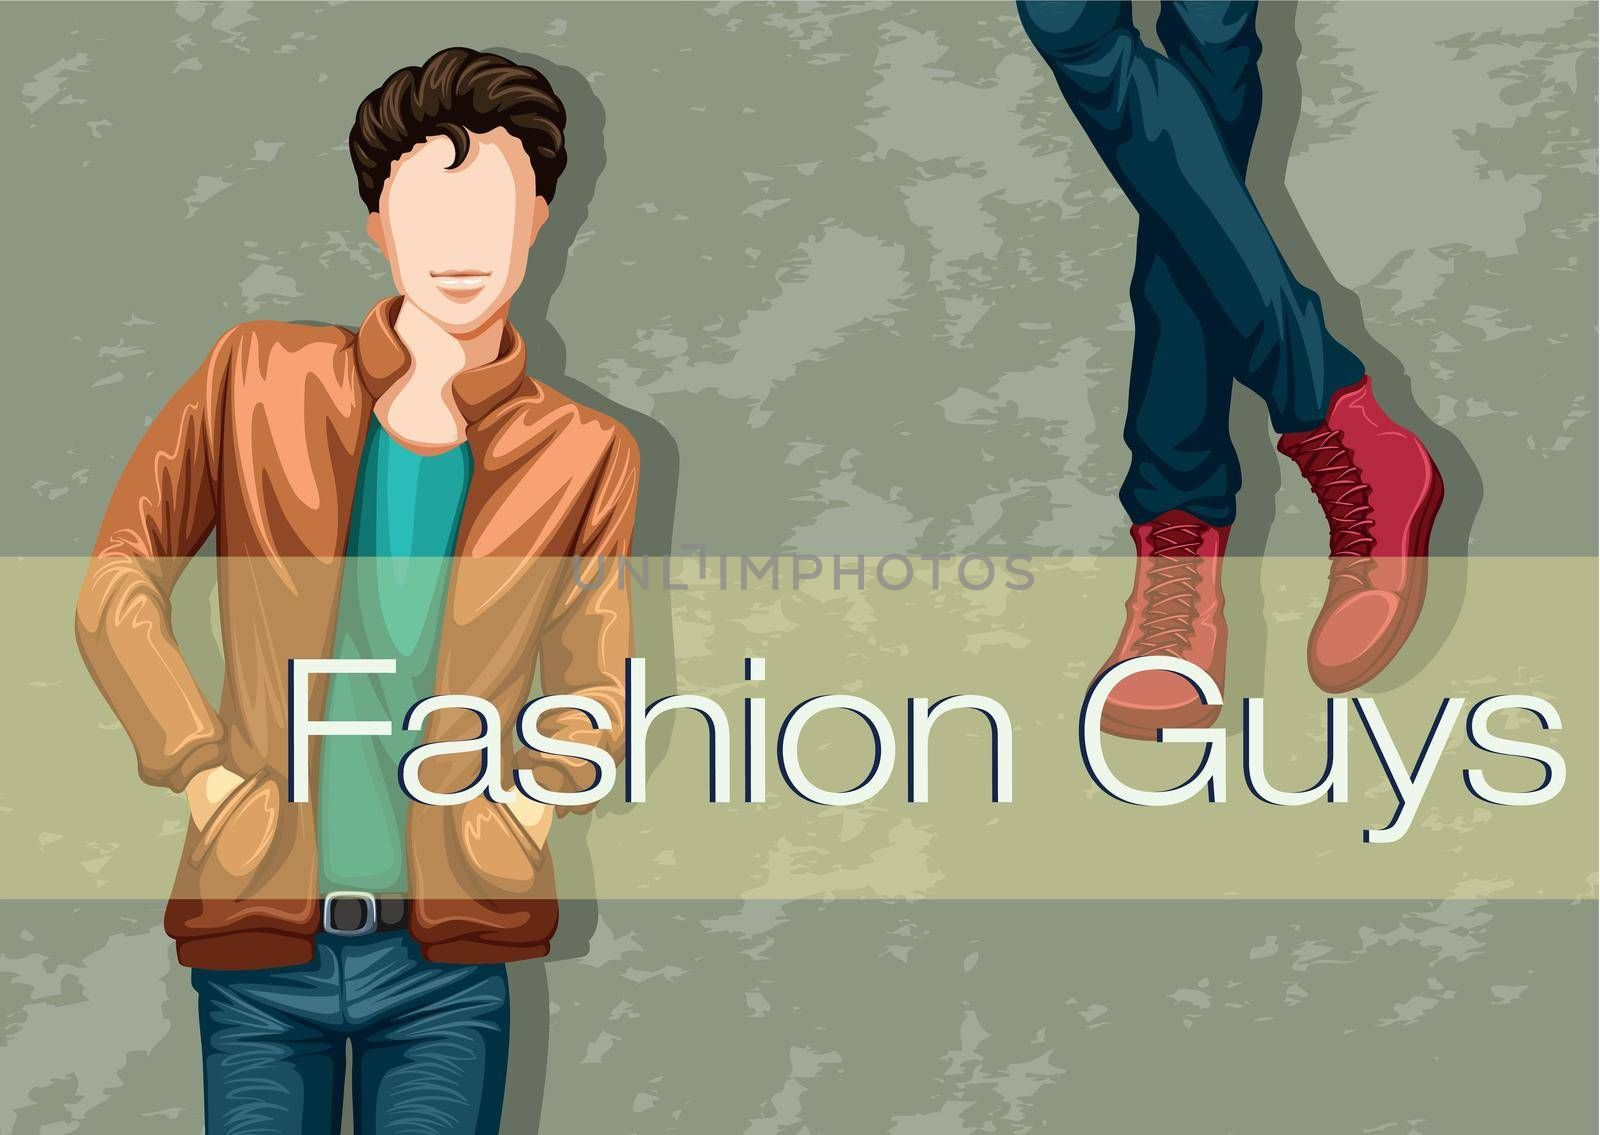 Male fashion with model and text